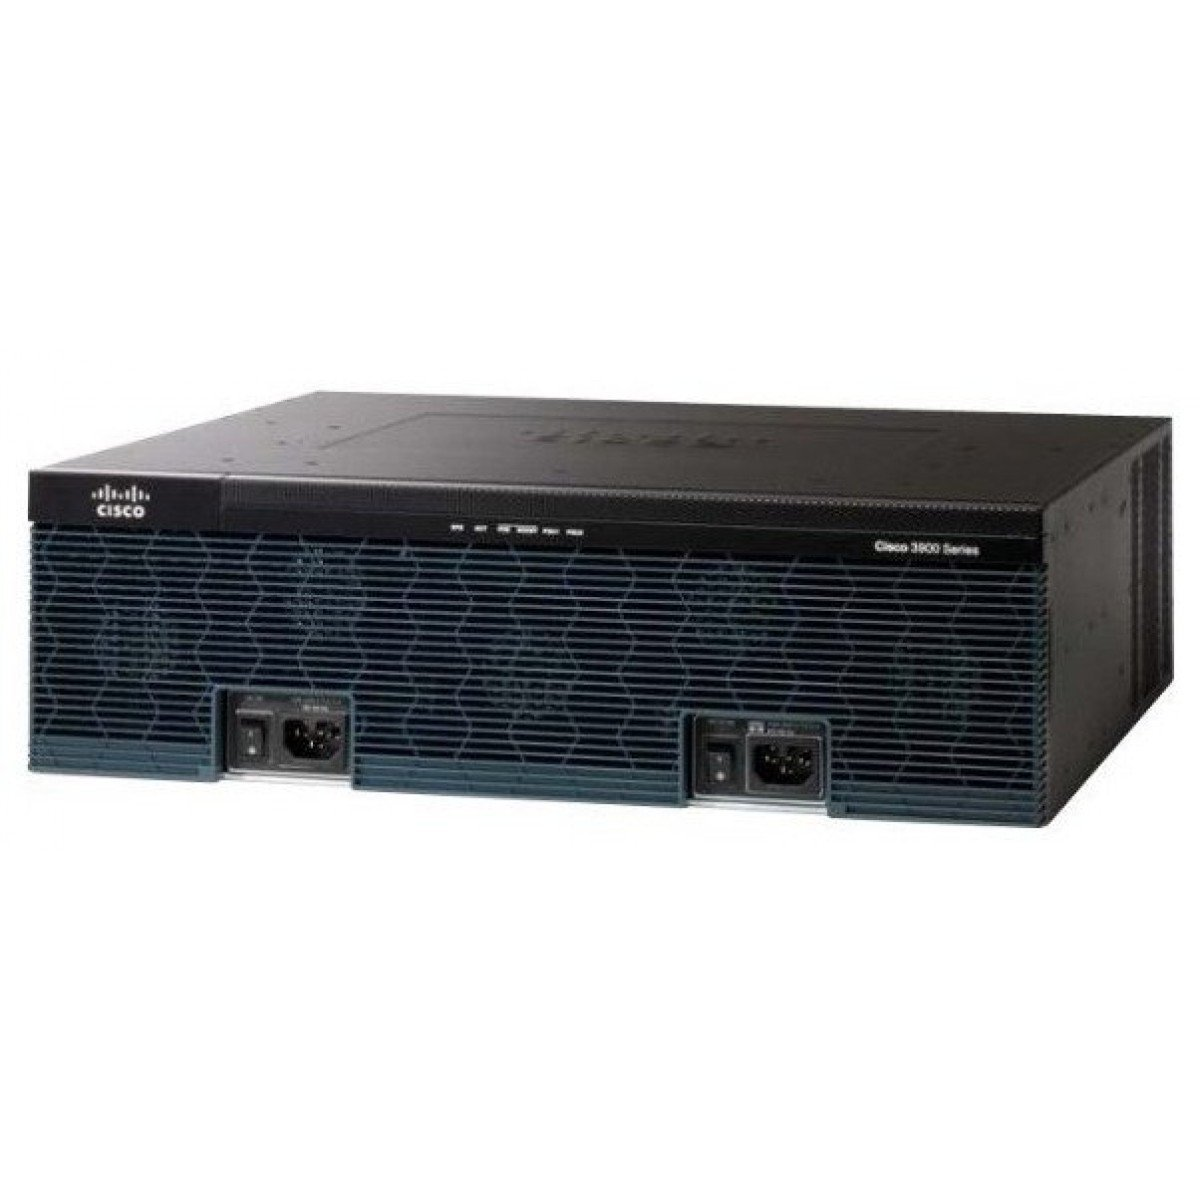 Cisco 3900 Series Integrated Service Router CISCO3945/K9